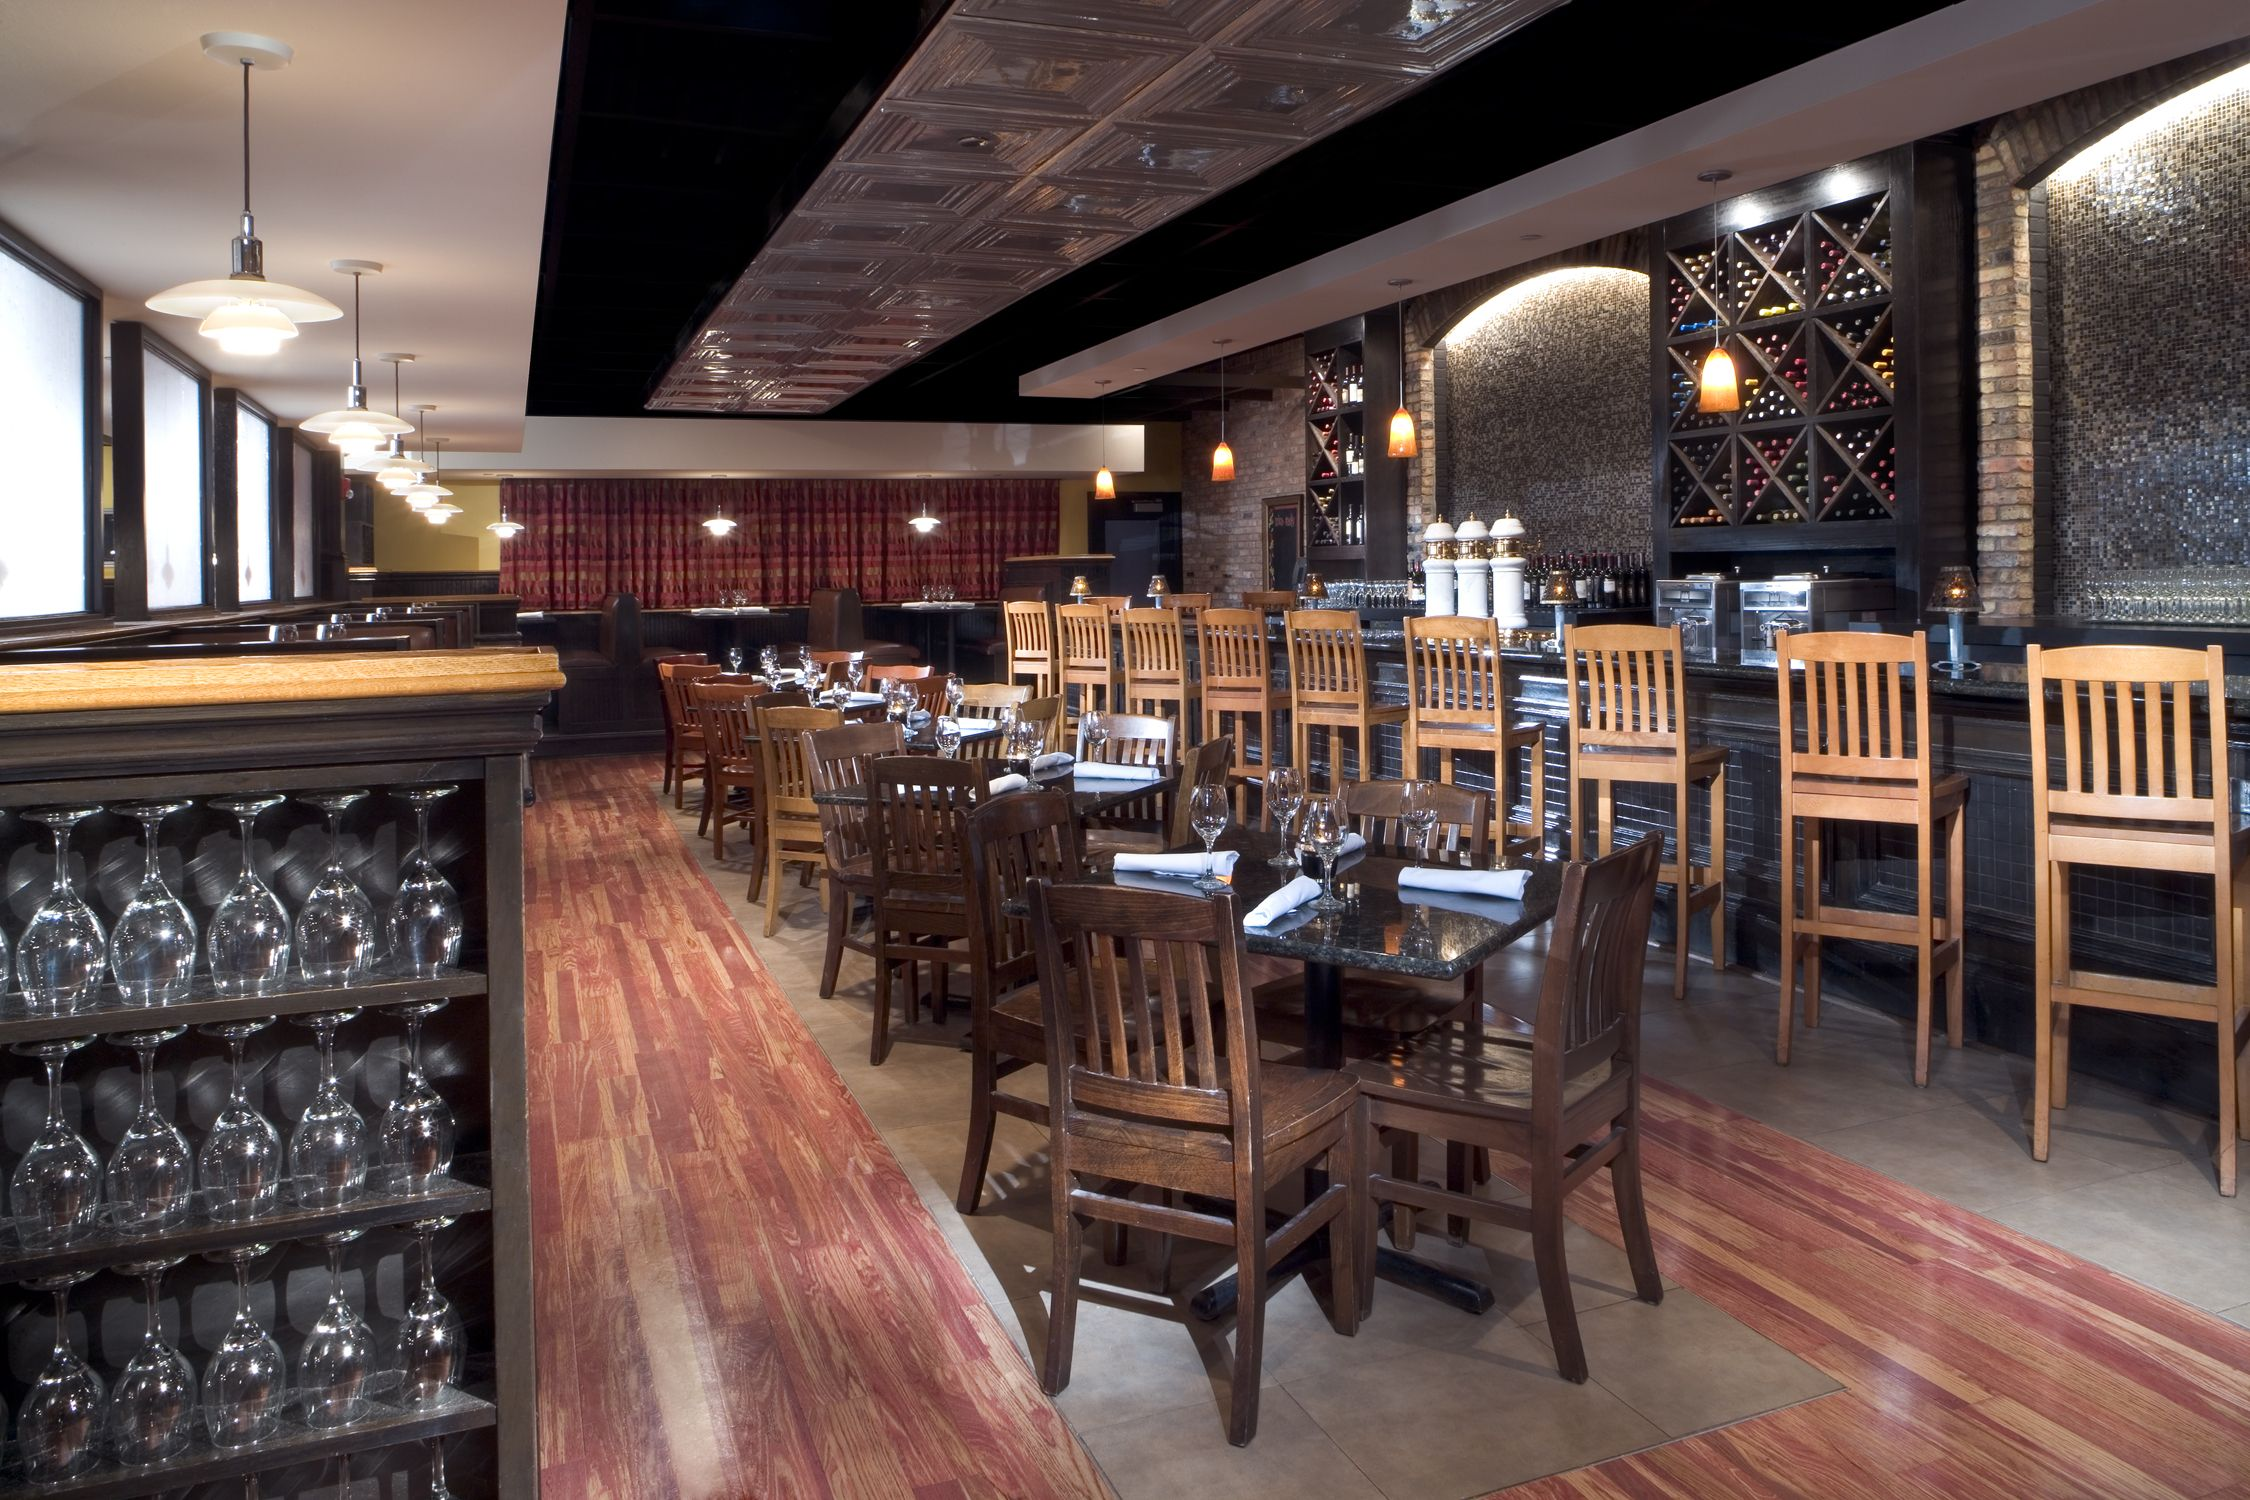 Cma provided design services for i fratelli restaurants located cma provided design services for i fratelli restaurants located in the dallas fort worth metal ceiling tilesfratelli dailygadgetfo Images